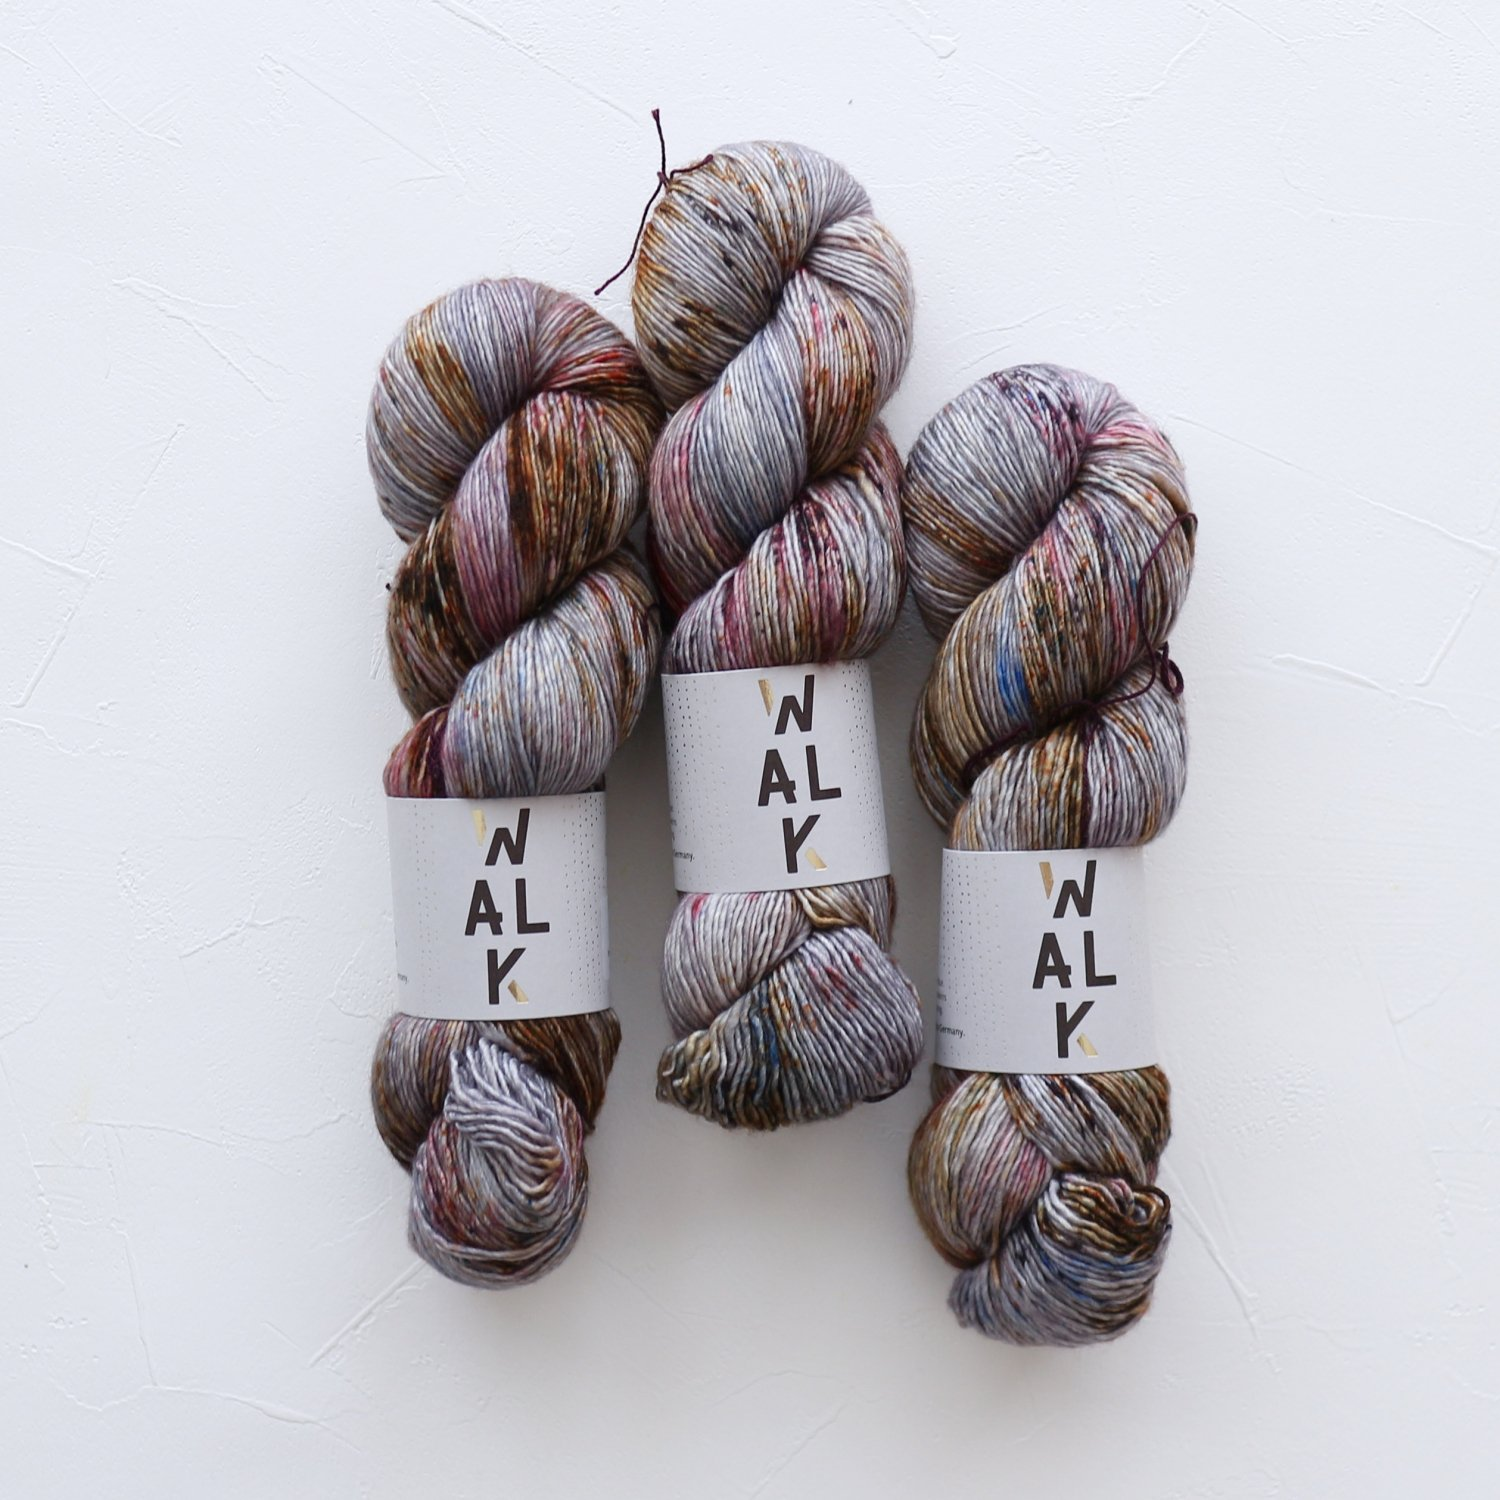 【WalkCollection】<br>Cottage Merino<br>COSMIC CHAOS